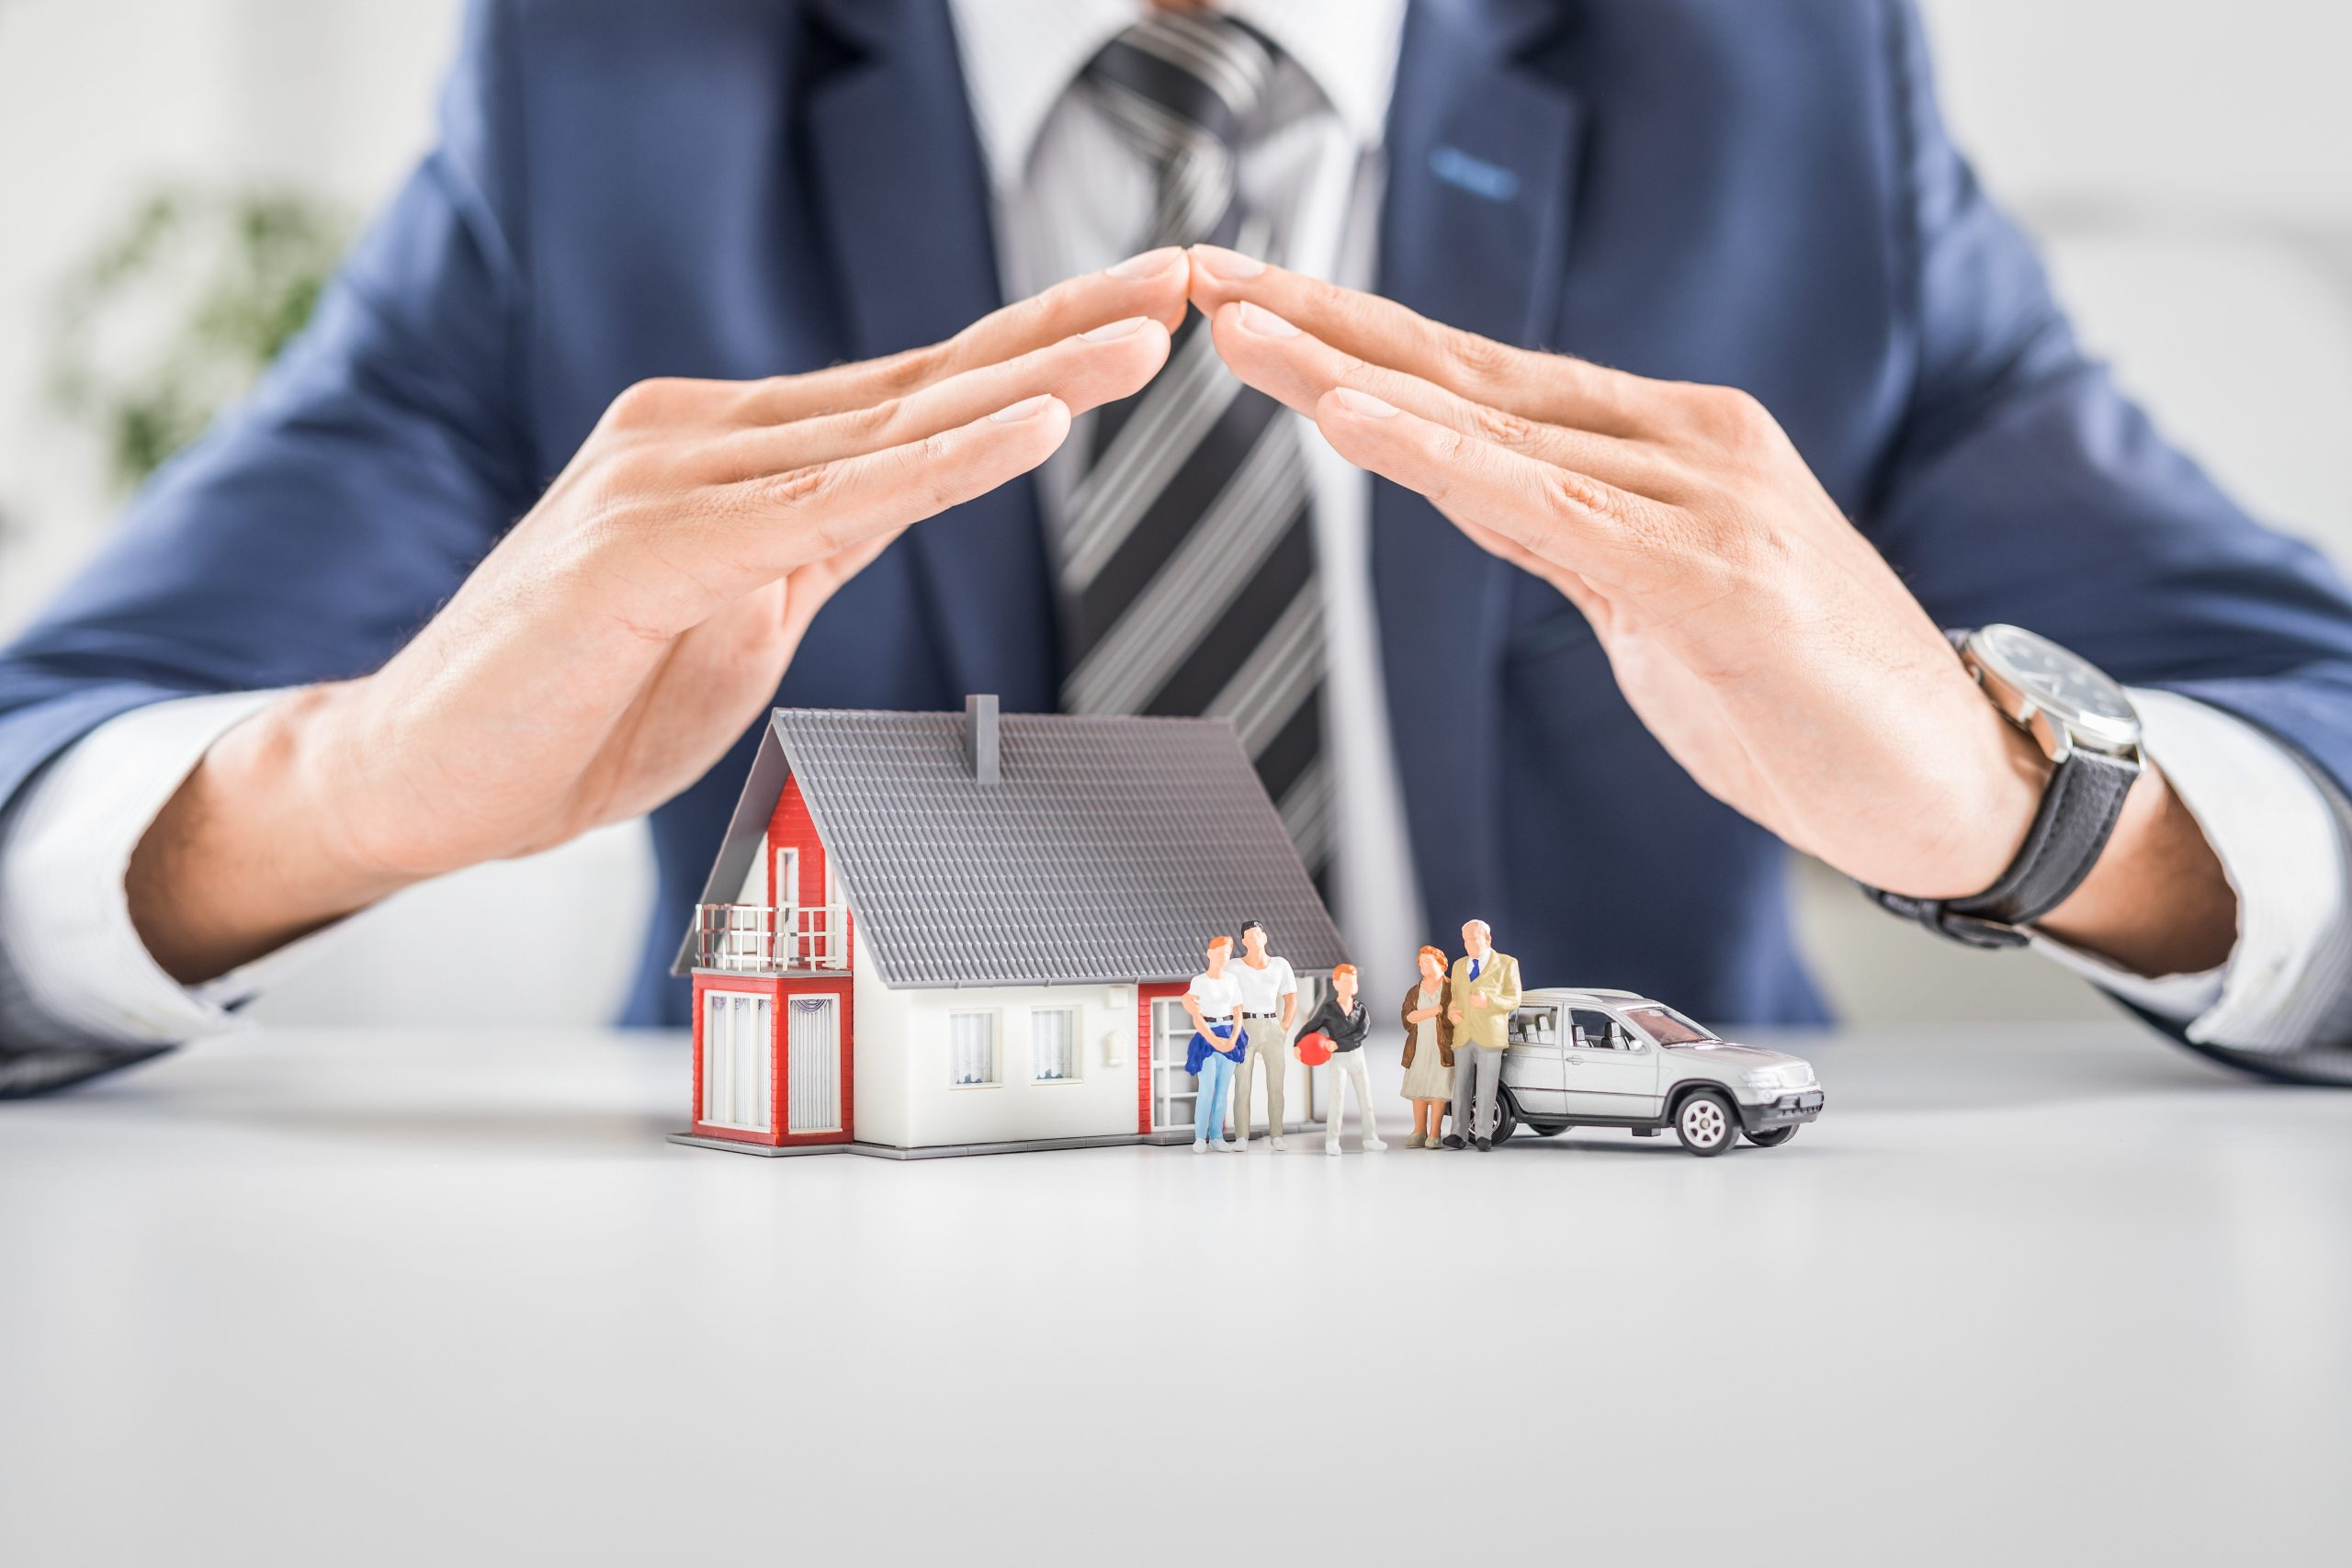 Compare insurance broker and direct agent, CIS insurance company, auto insurance, home insurance, business insurance, travel insurance